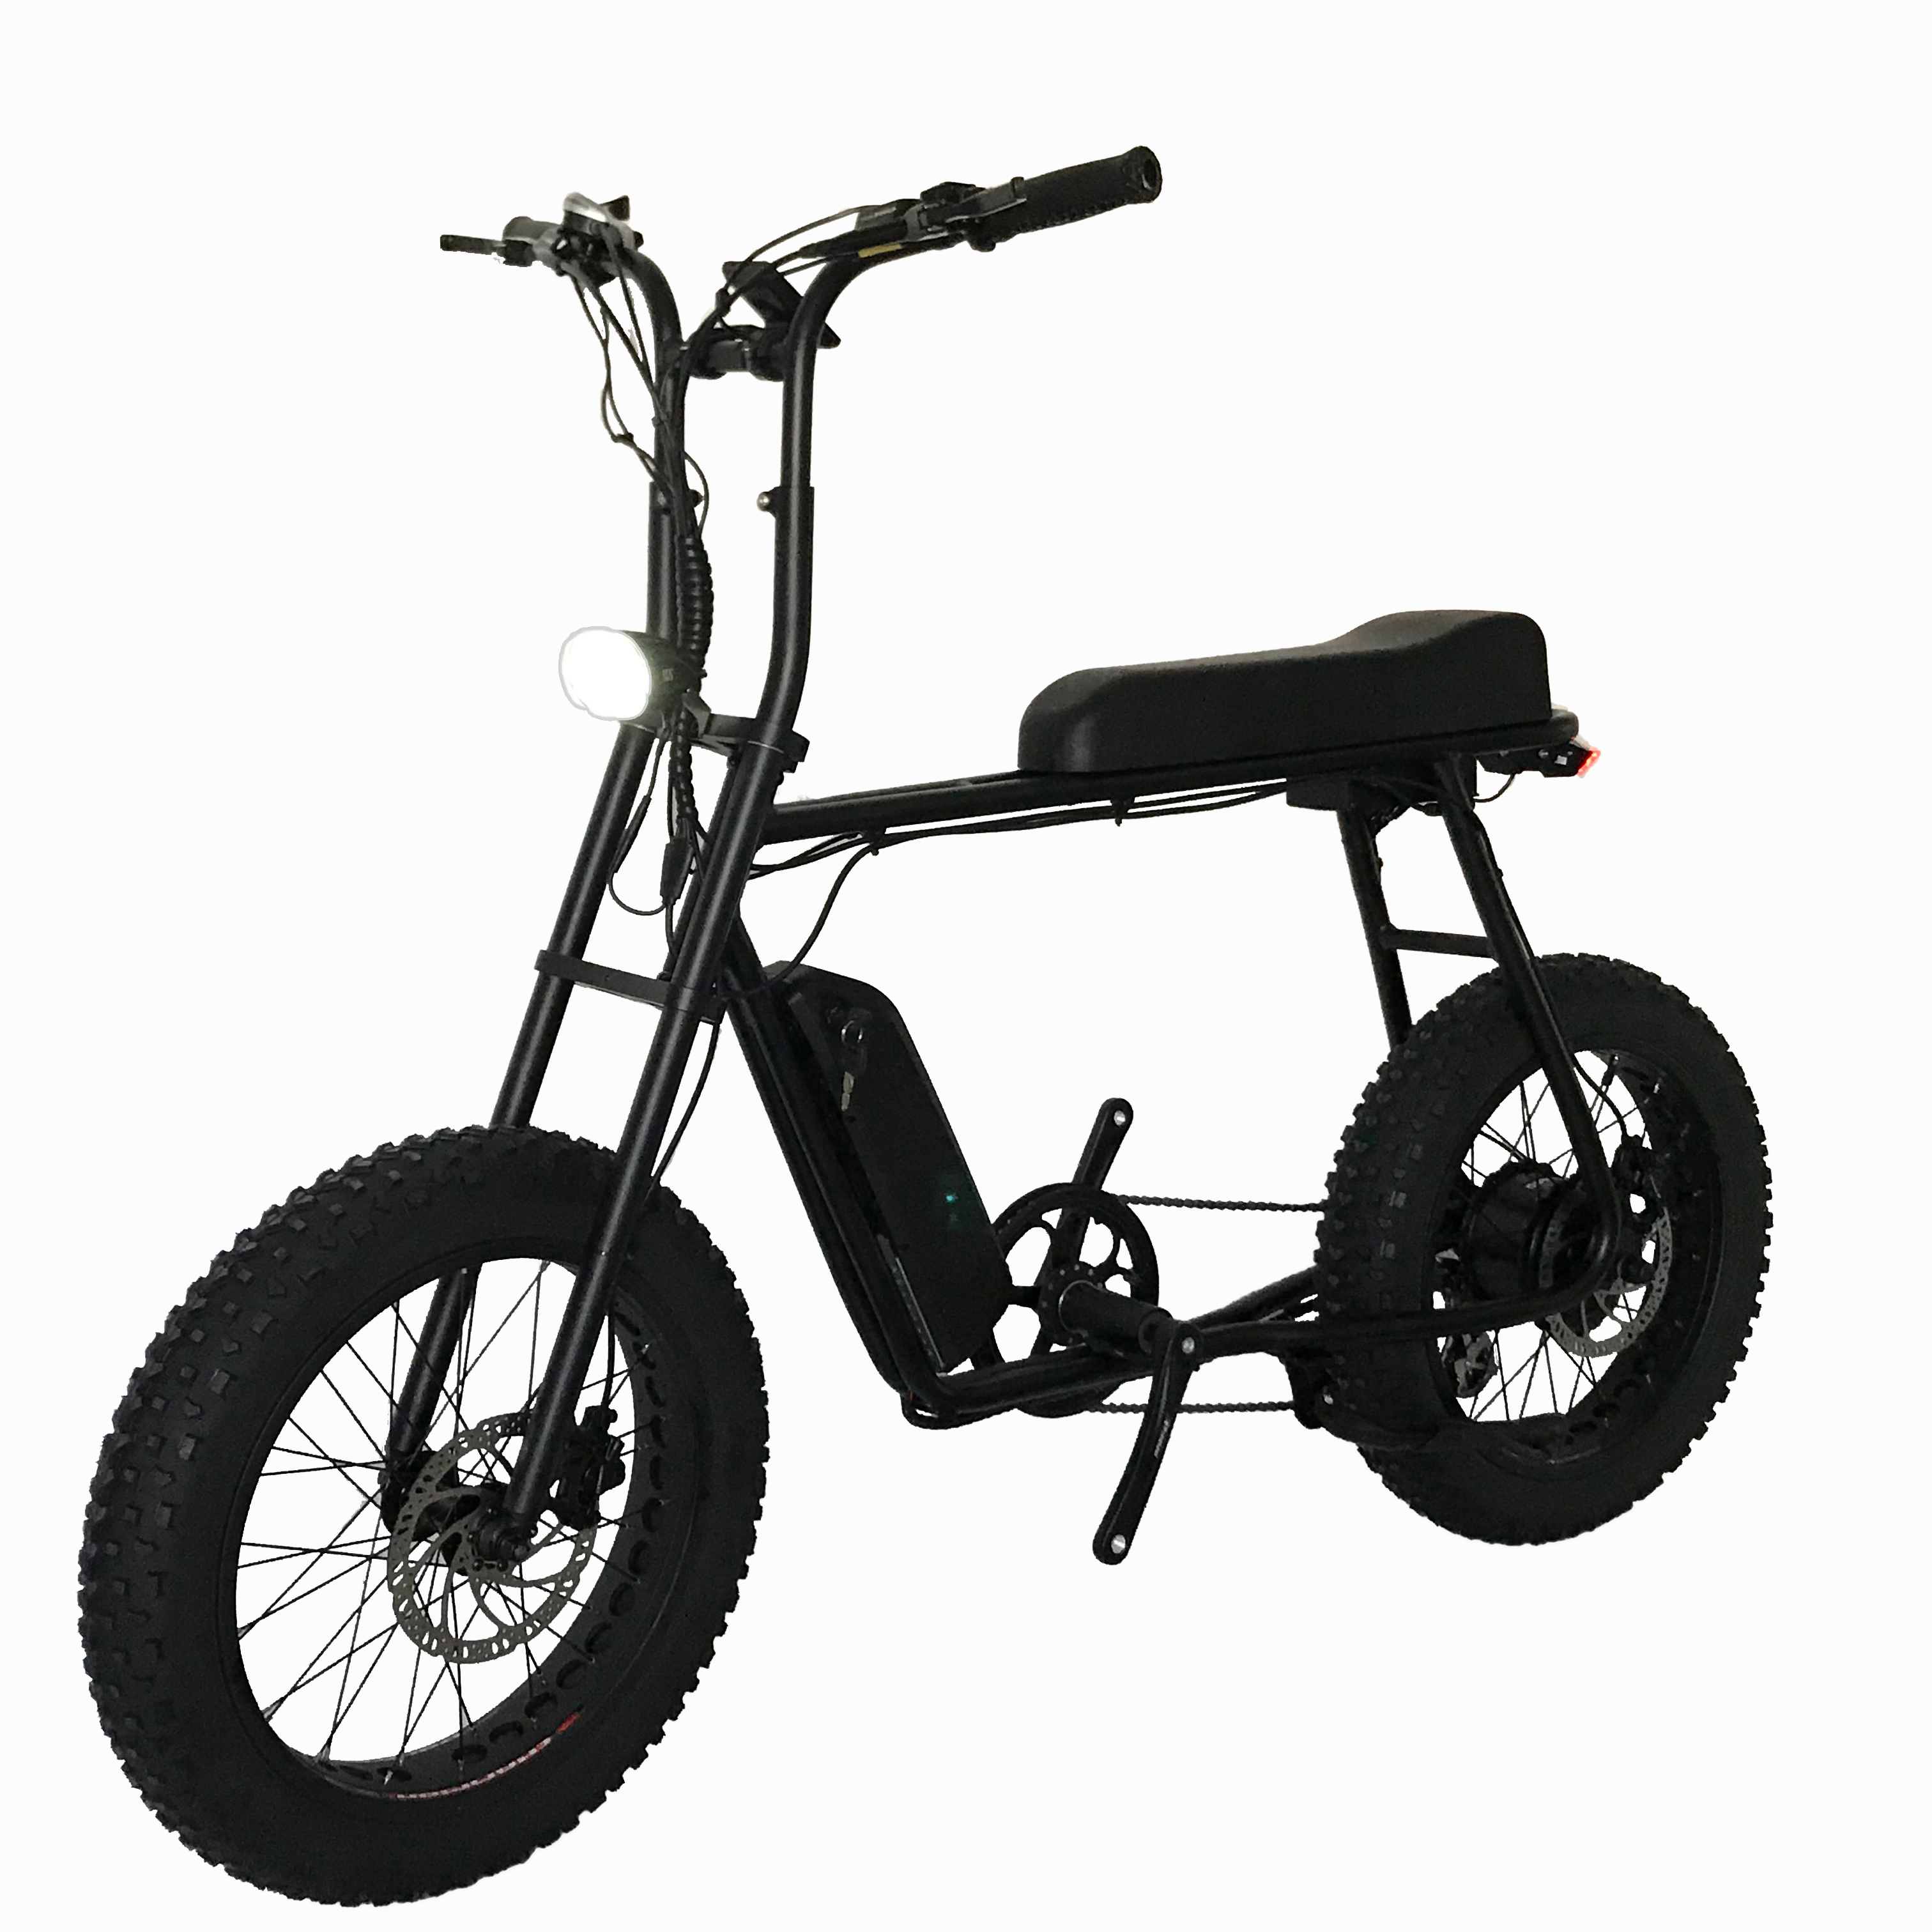 Mario-Retro 20 48v 750w Fat Tire ebike with Bafang rear motor, Color can be ordered